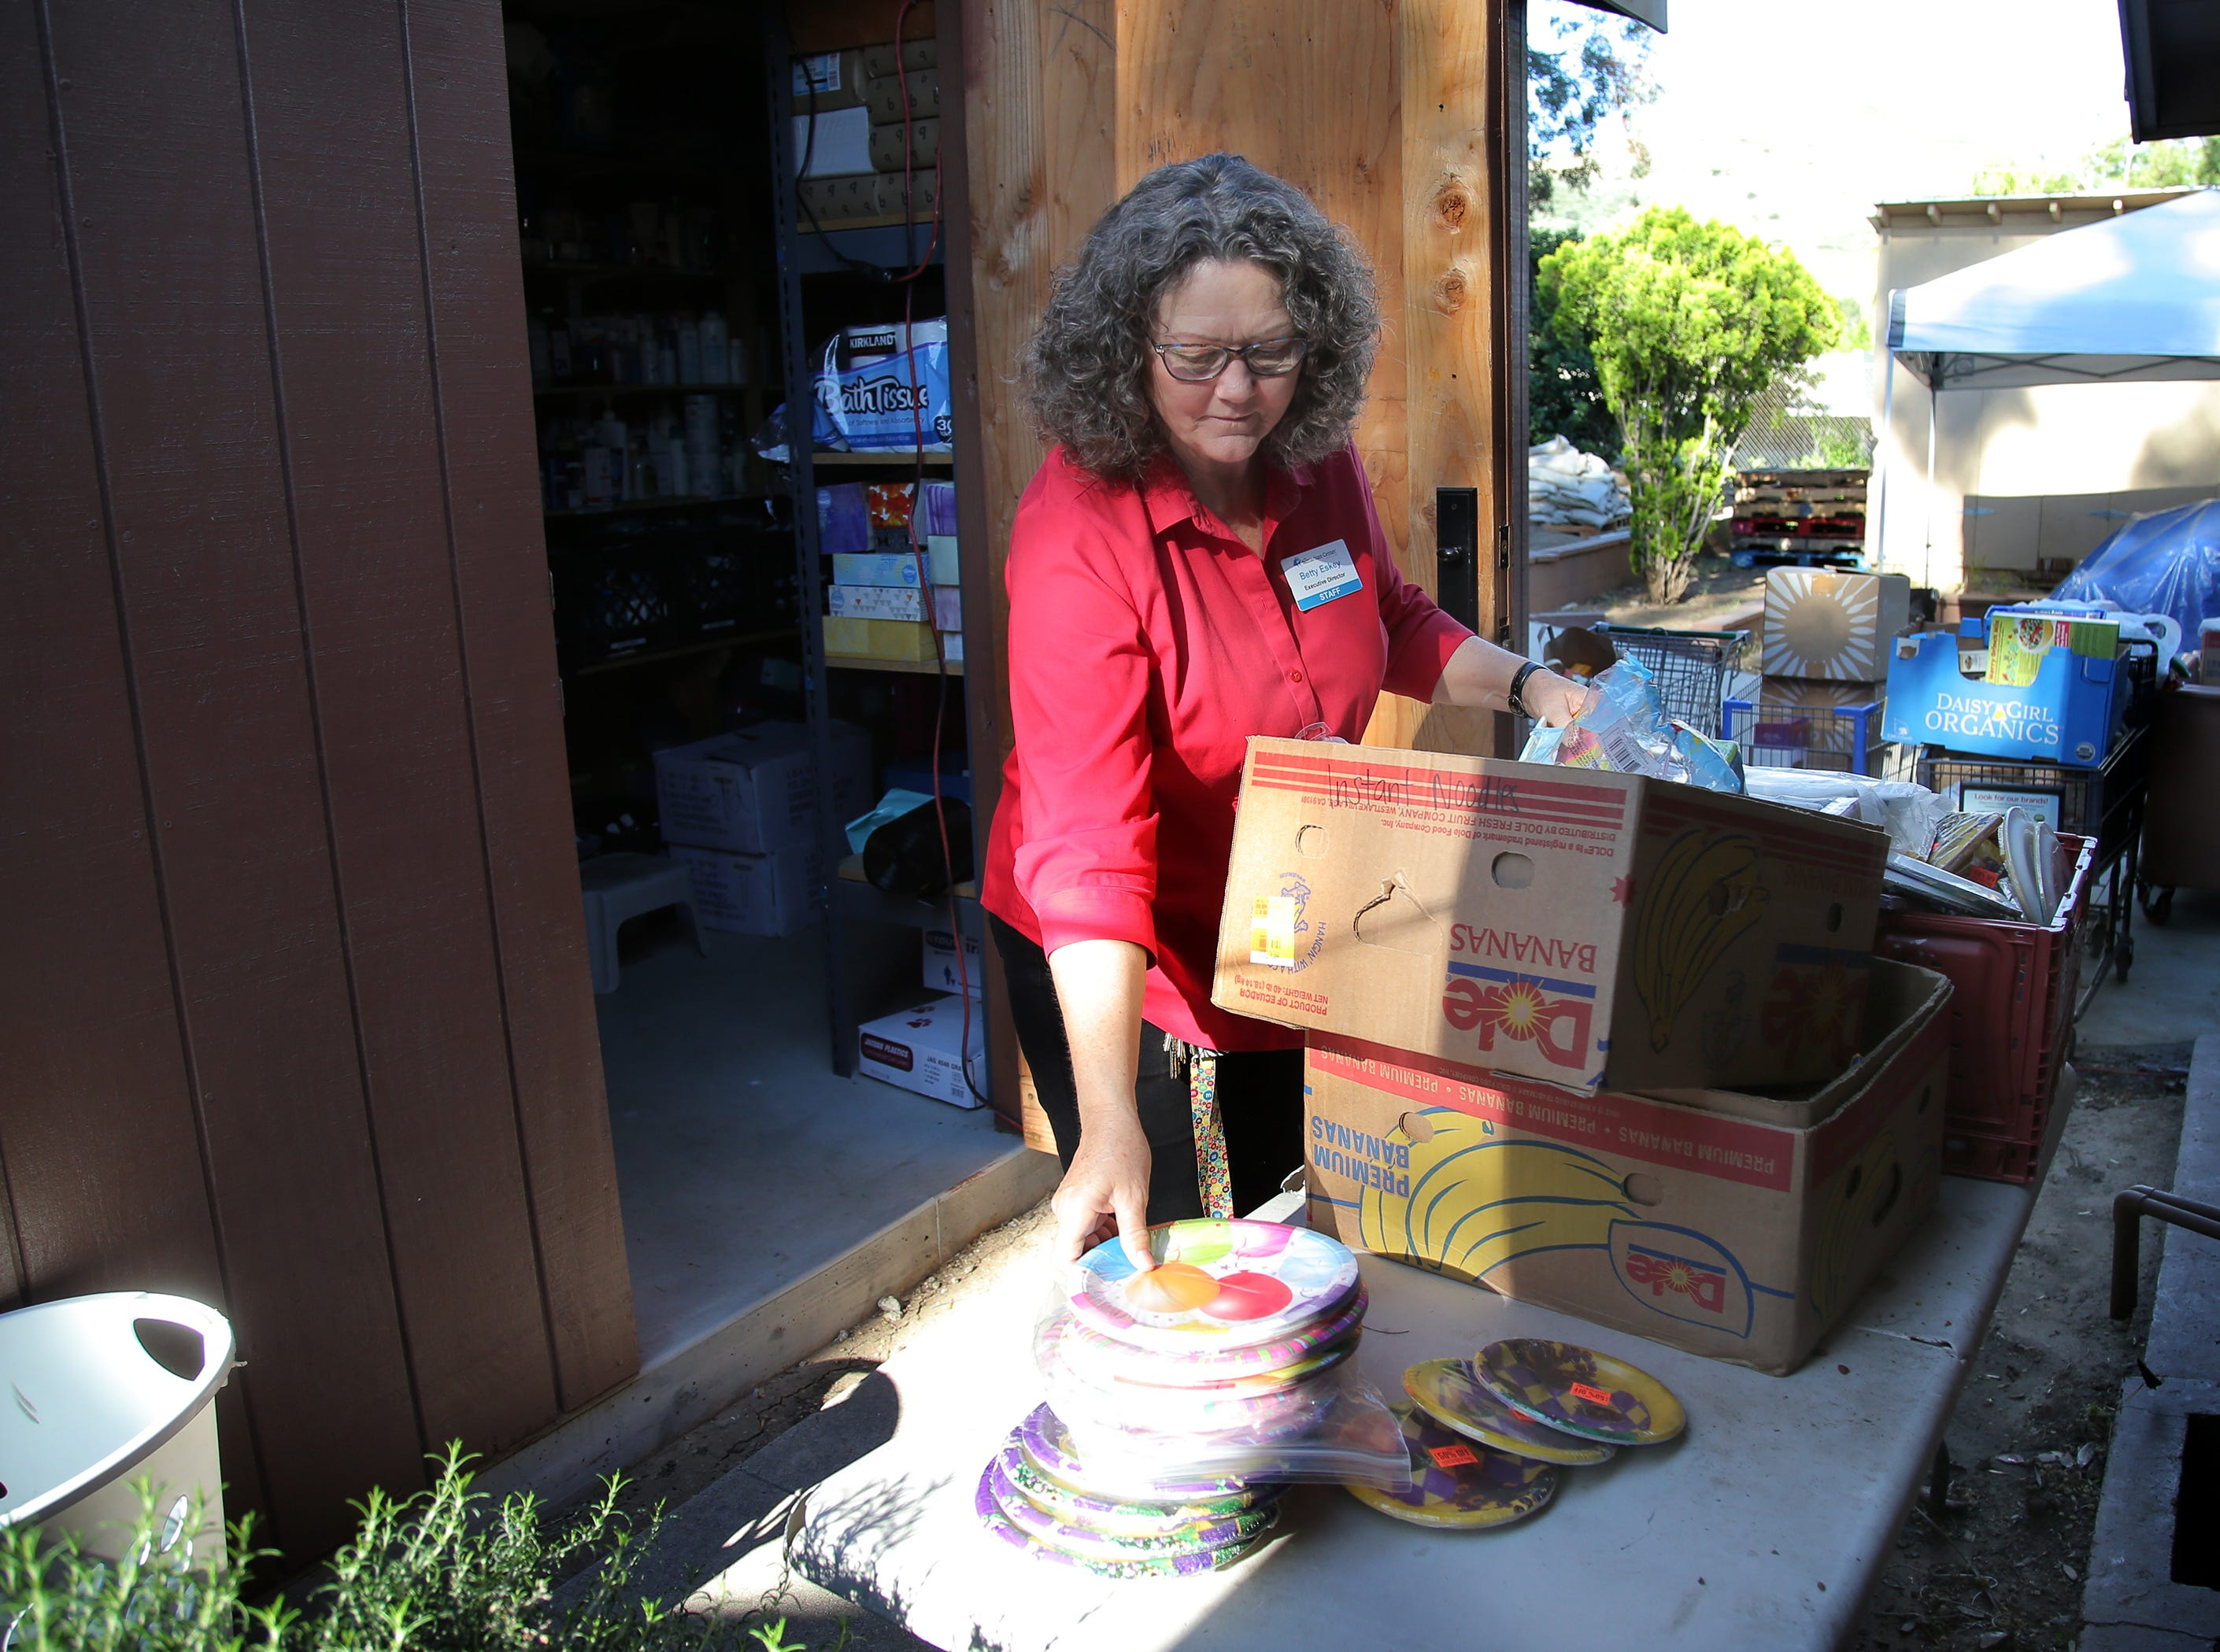 Samaritan Center Executive Director Betty Eskey goes through some donations that the nonprofit Simi Valley homeless shelter receives.